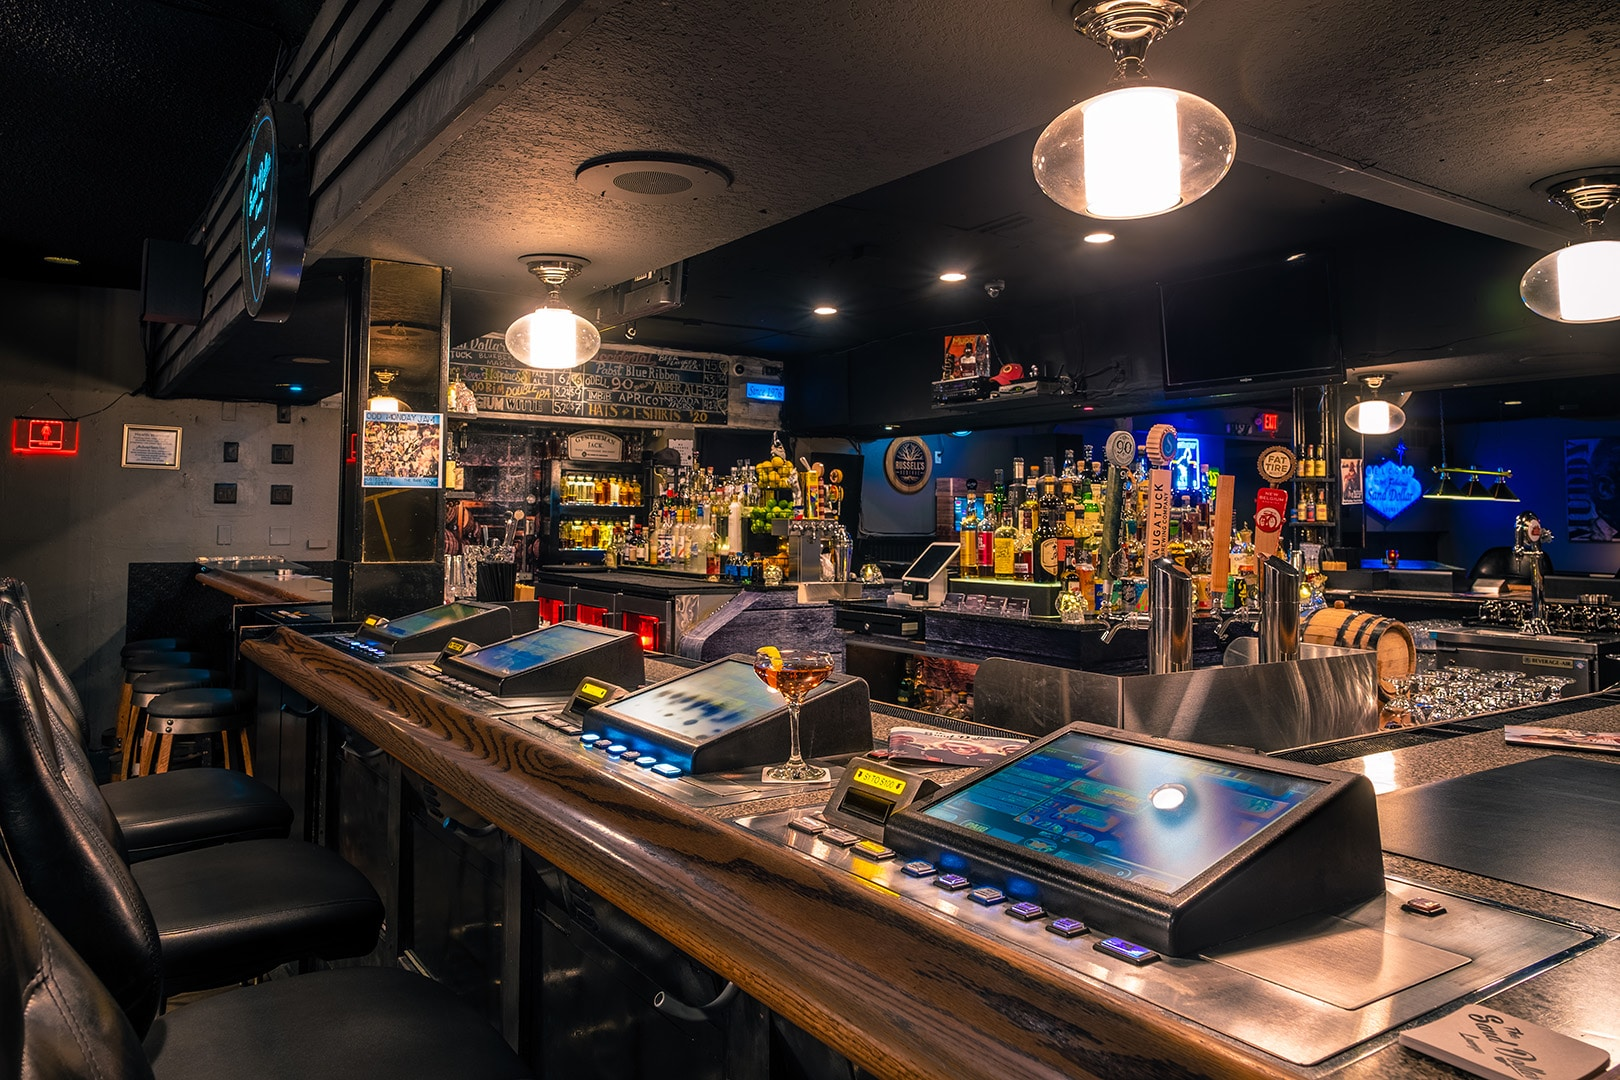 Sand Dollar Lounge Expands to Second Location